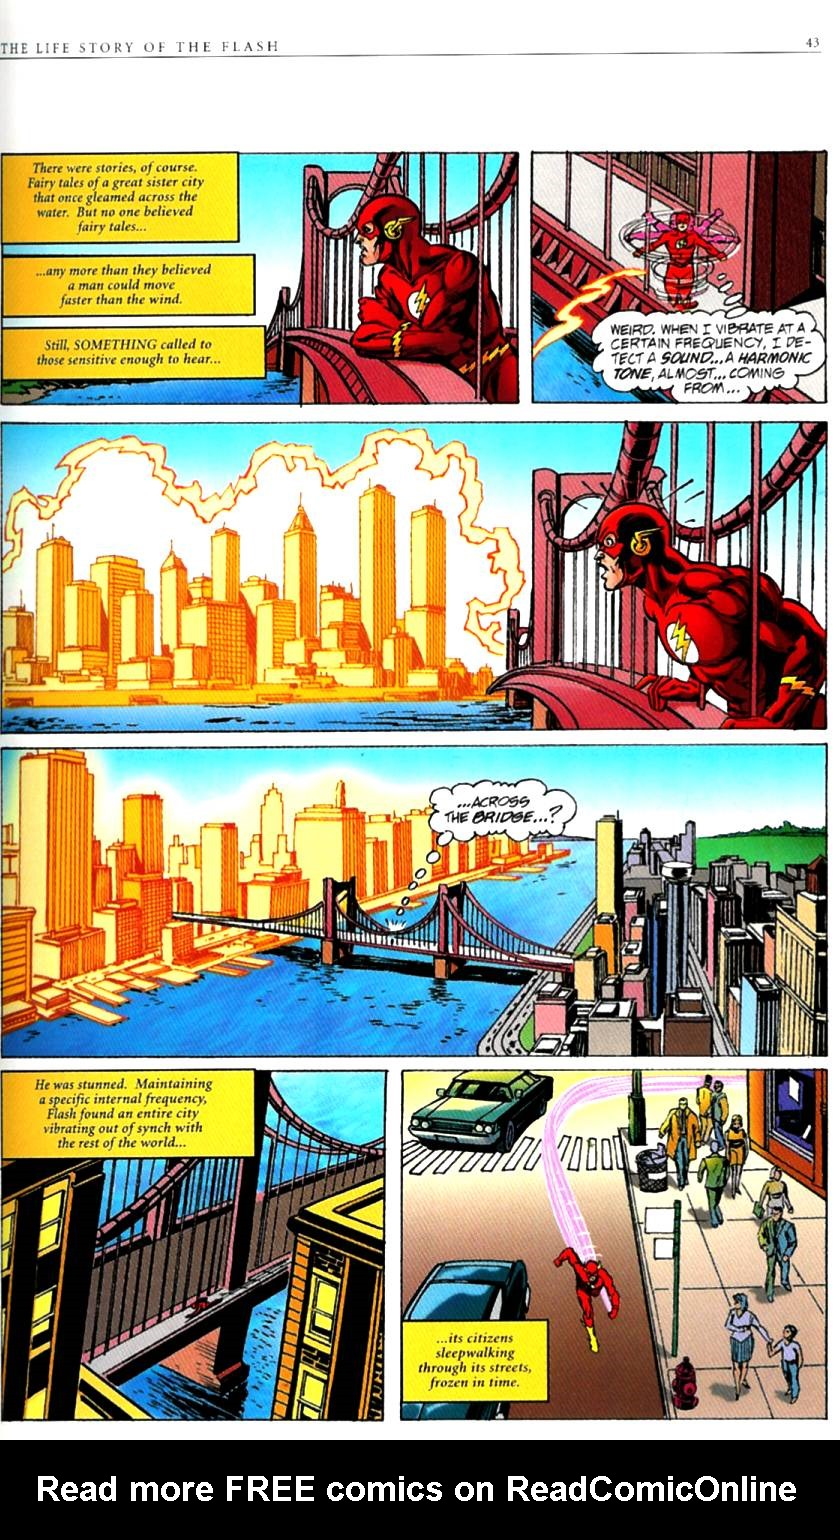 Read online The Life Story of the Flash comic -  Issue # Full - 45